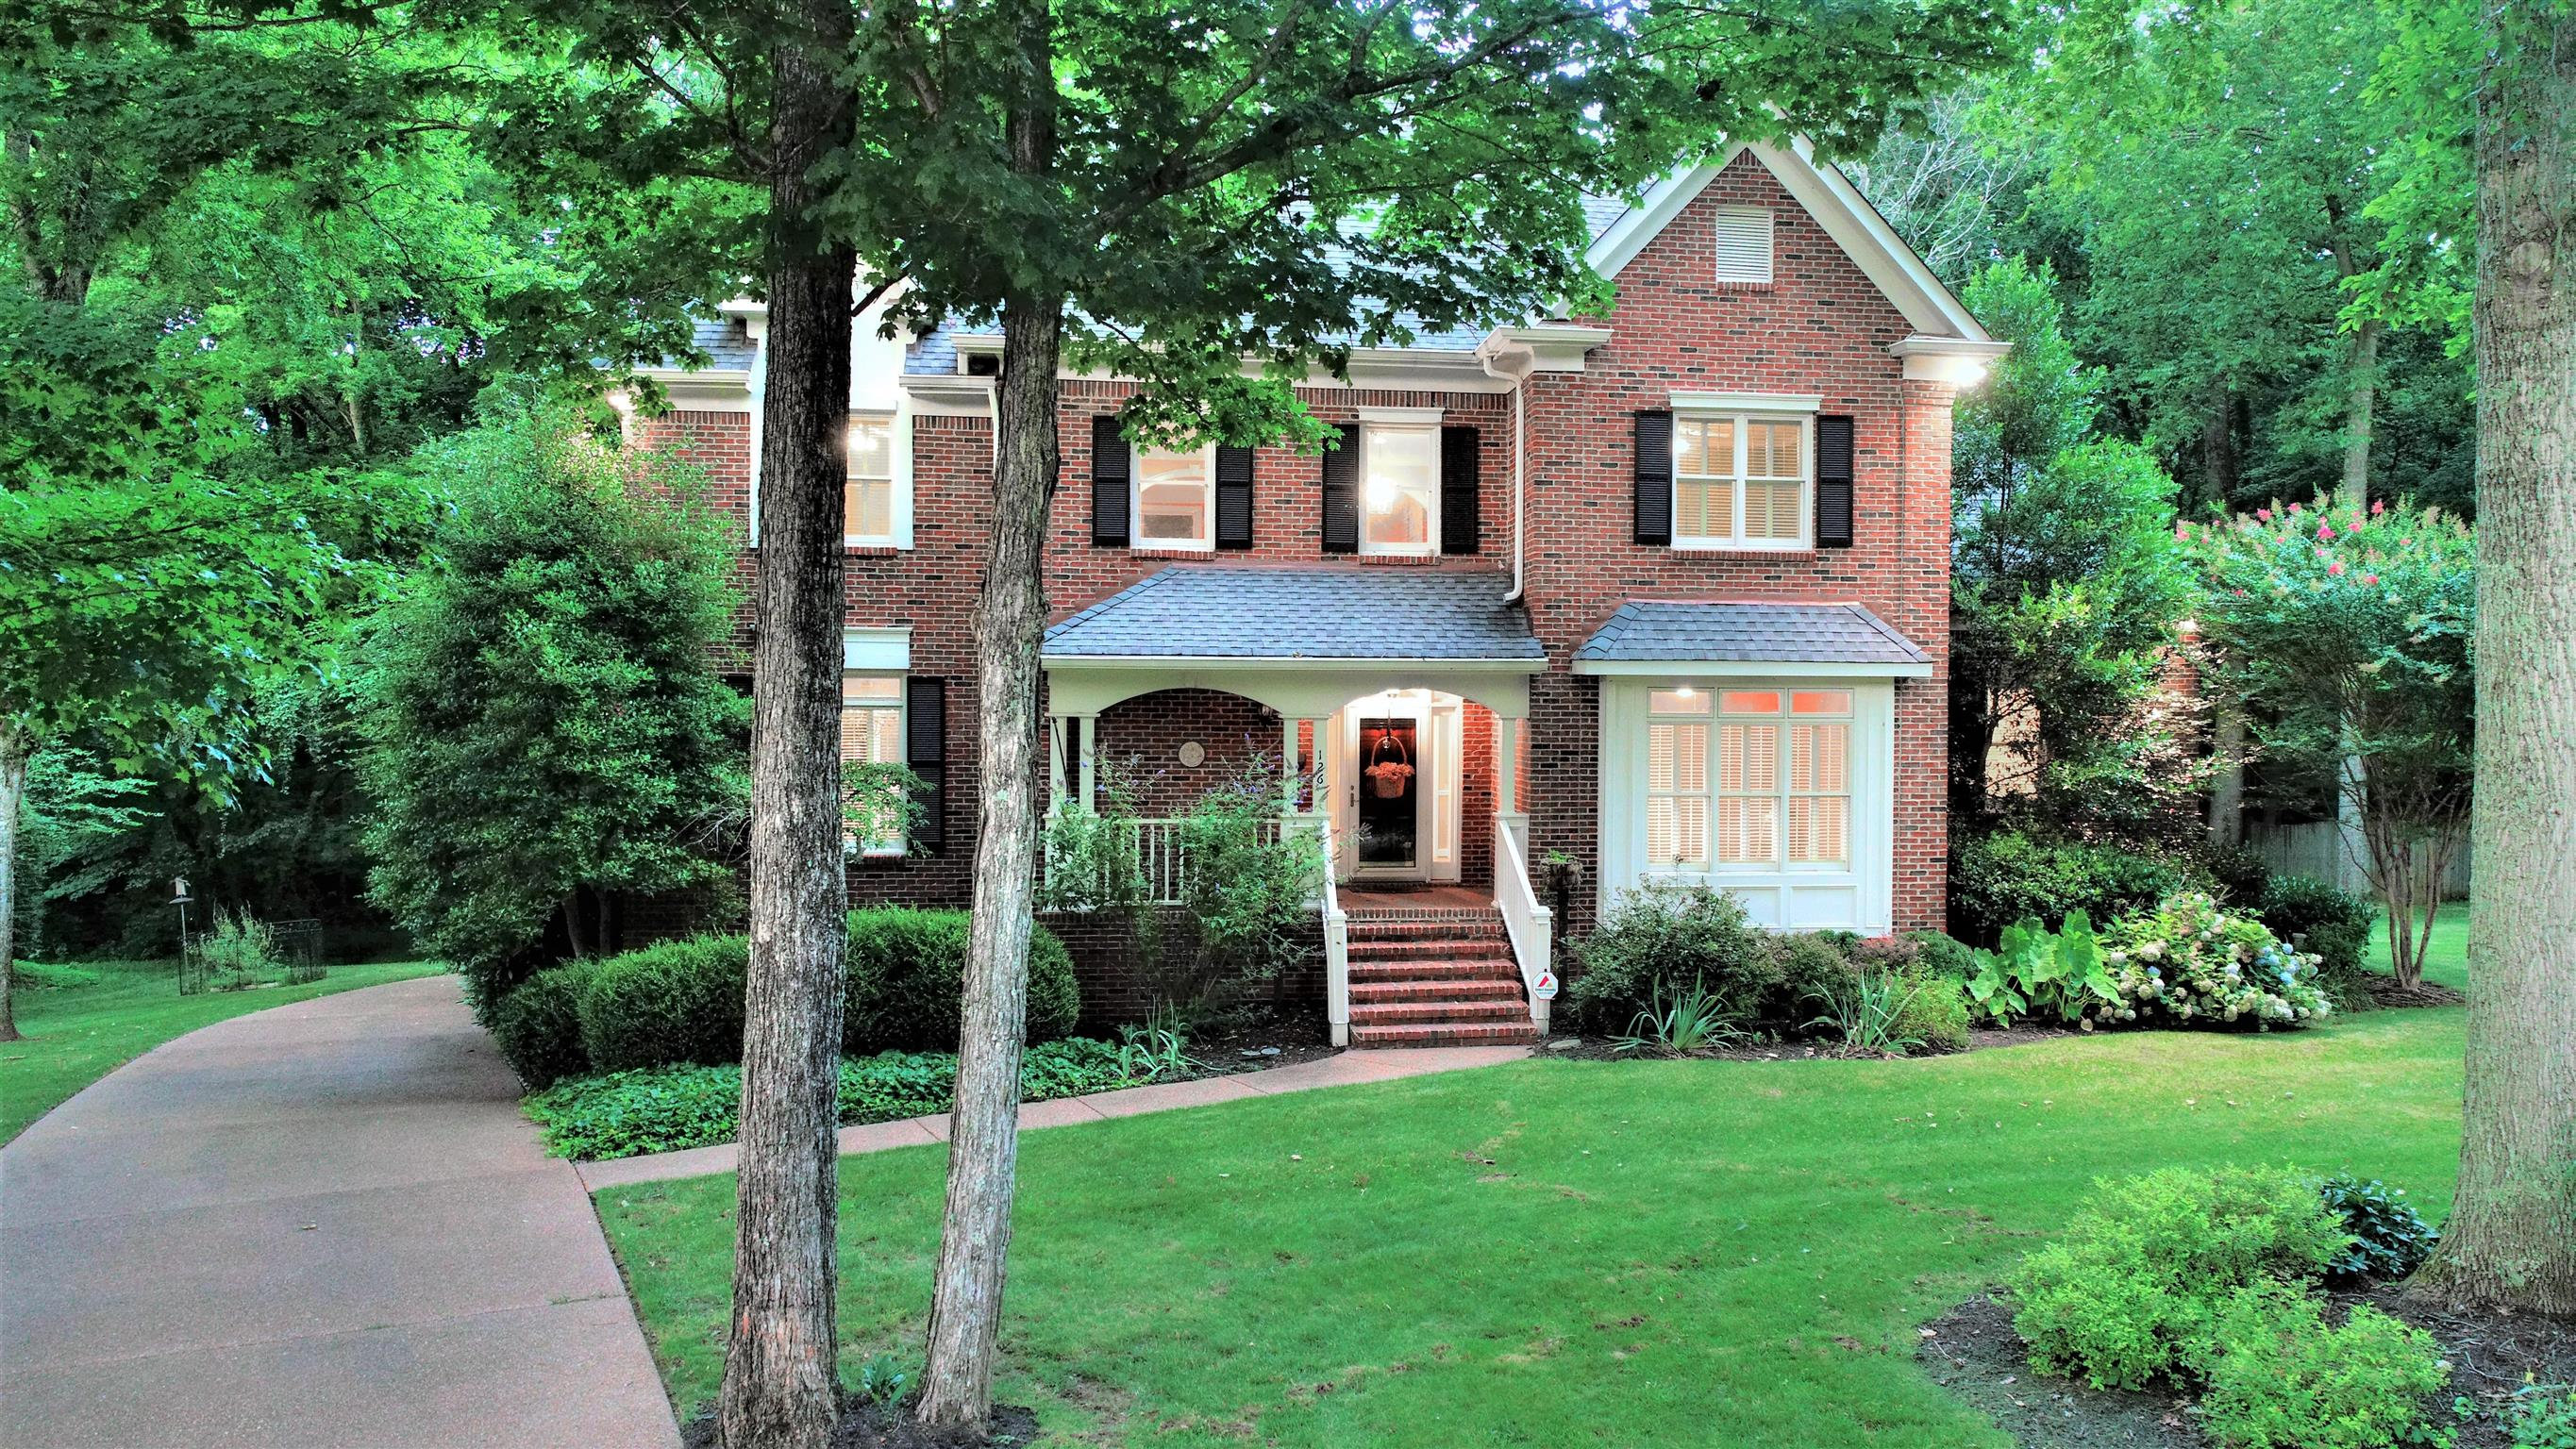 126 Laural Hill Dr, Smyrna, TN 37167 - Smyrna, TN real estate listing